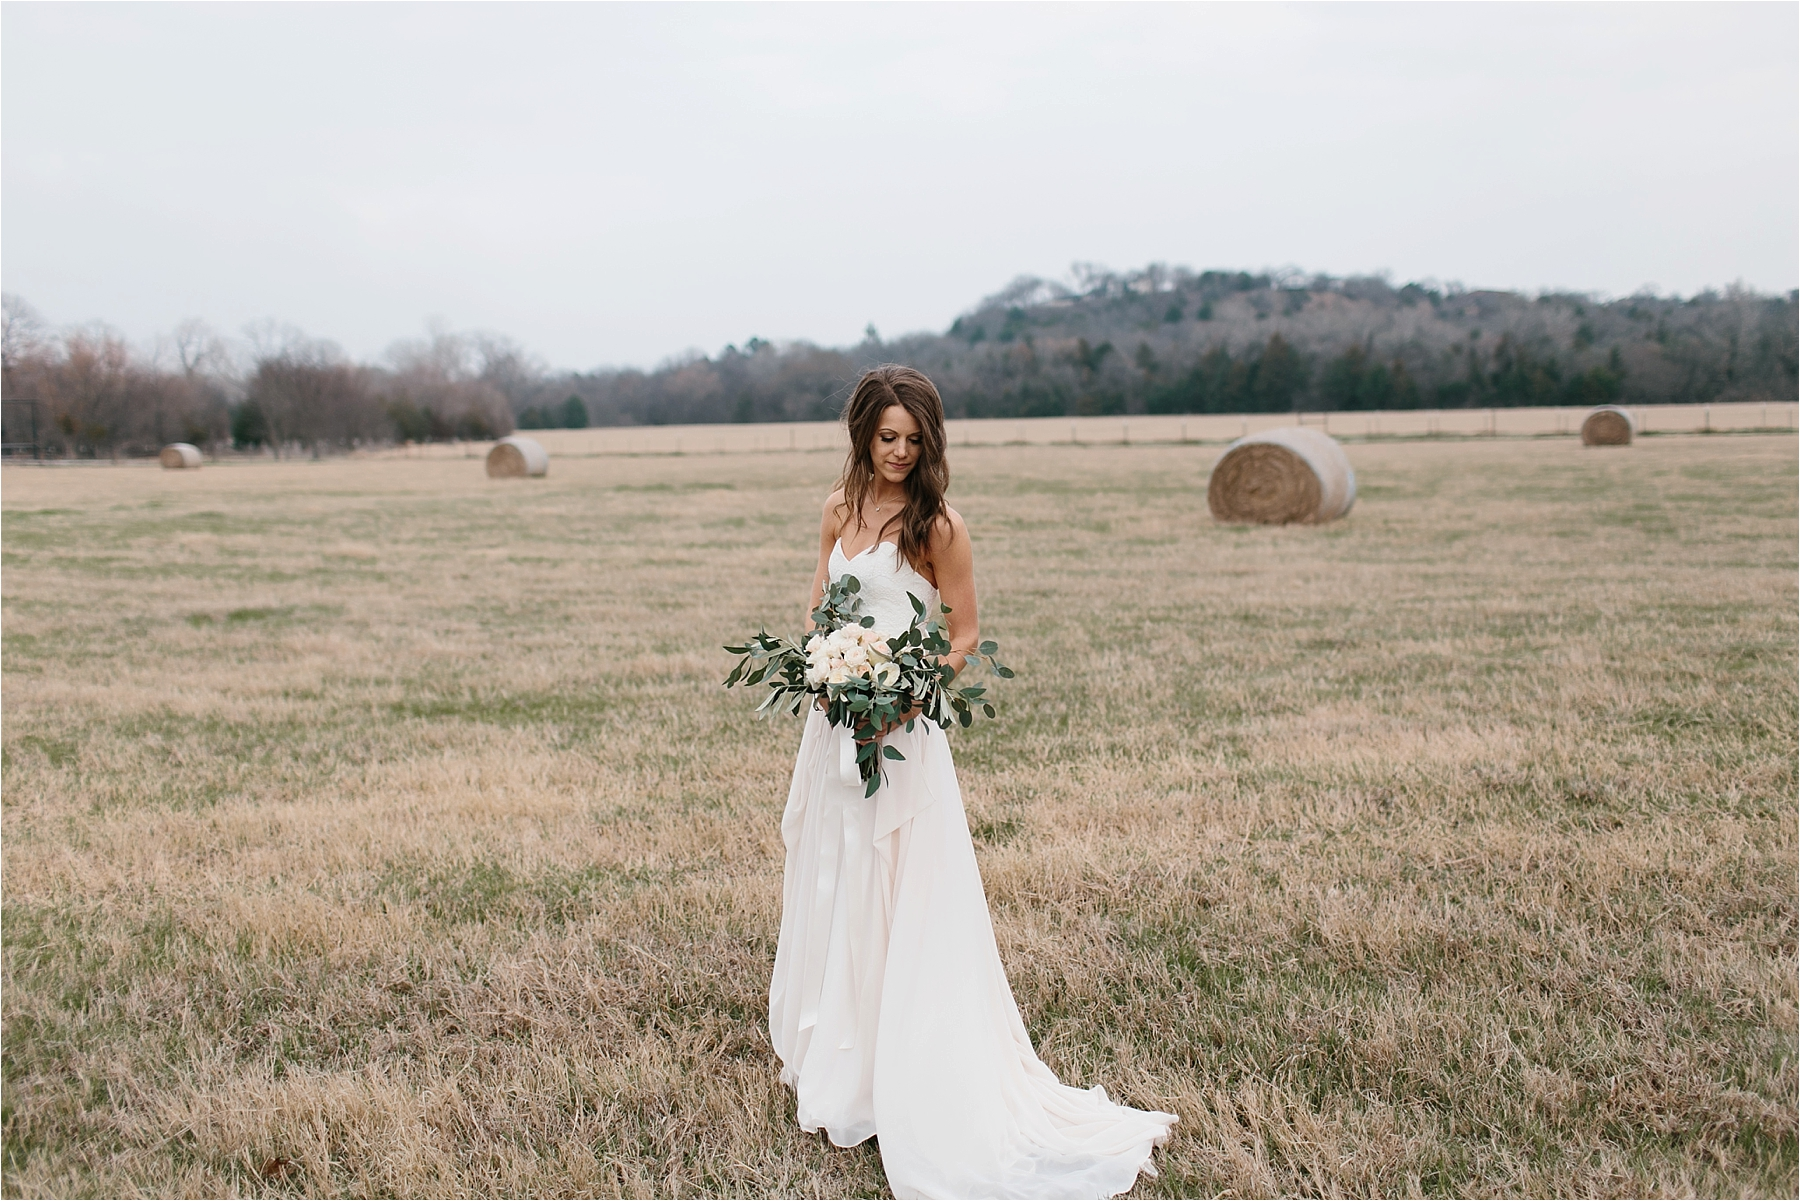 Lauren + Matt __ an intimate, emotional, blush pink, navy blue, and greenery toned wedding accents at the Brooks at Weatherford by North Texas Wedding Photographer Rachel Meagan Photography082